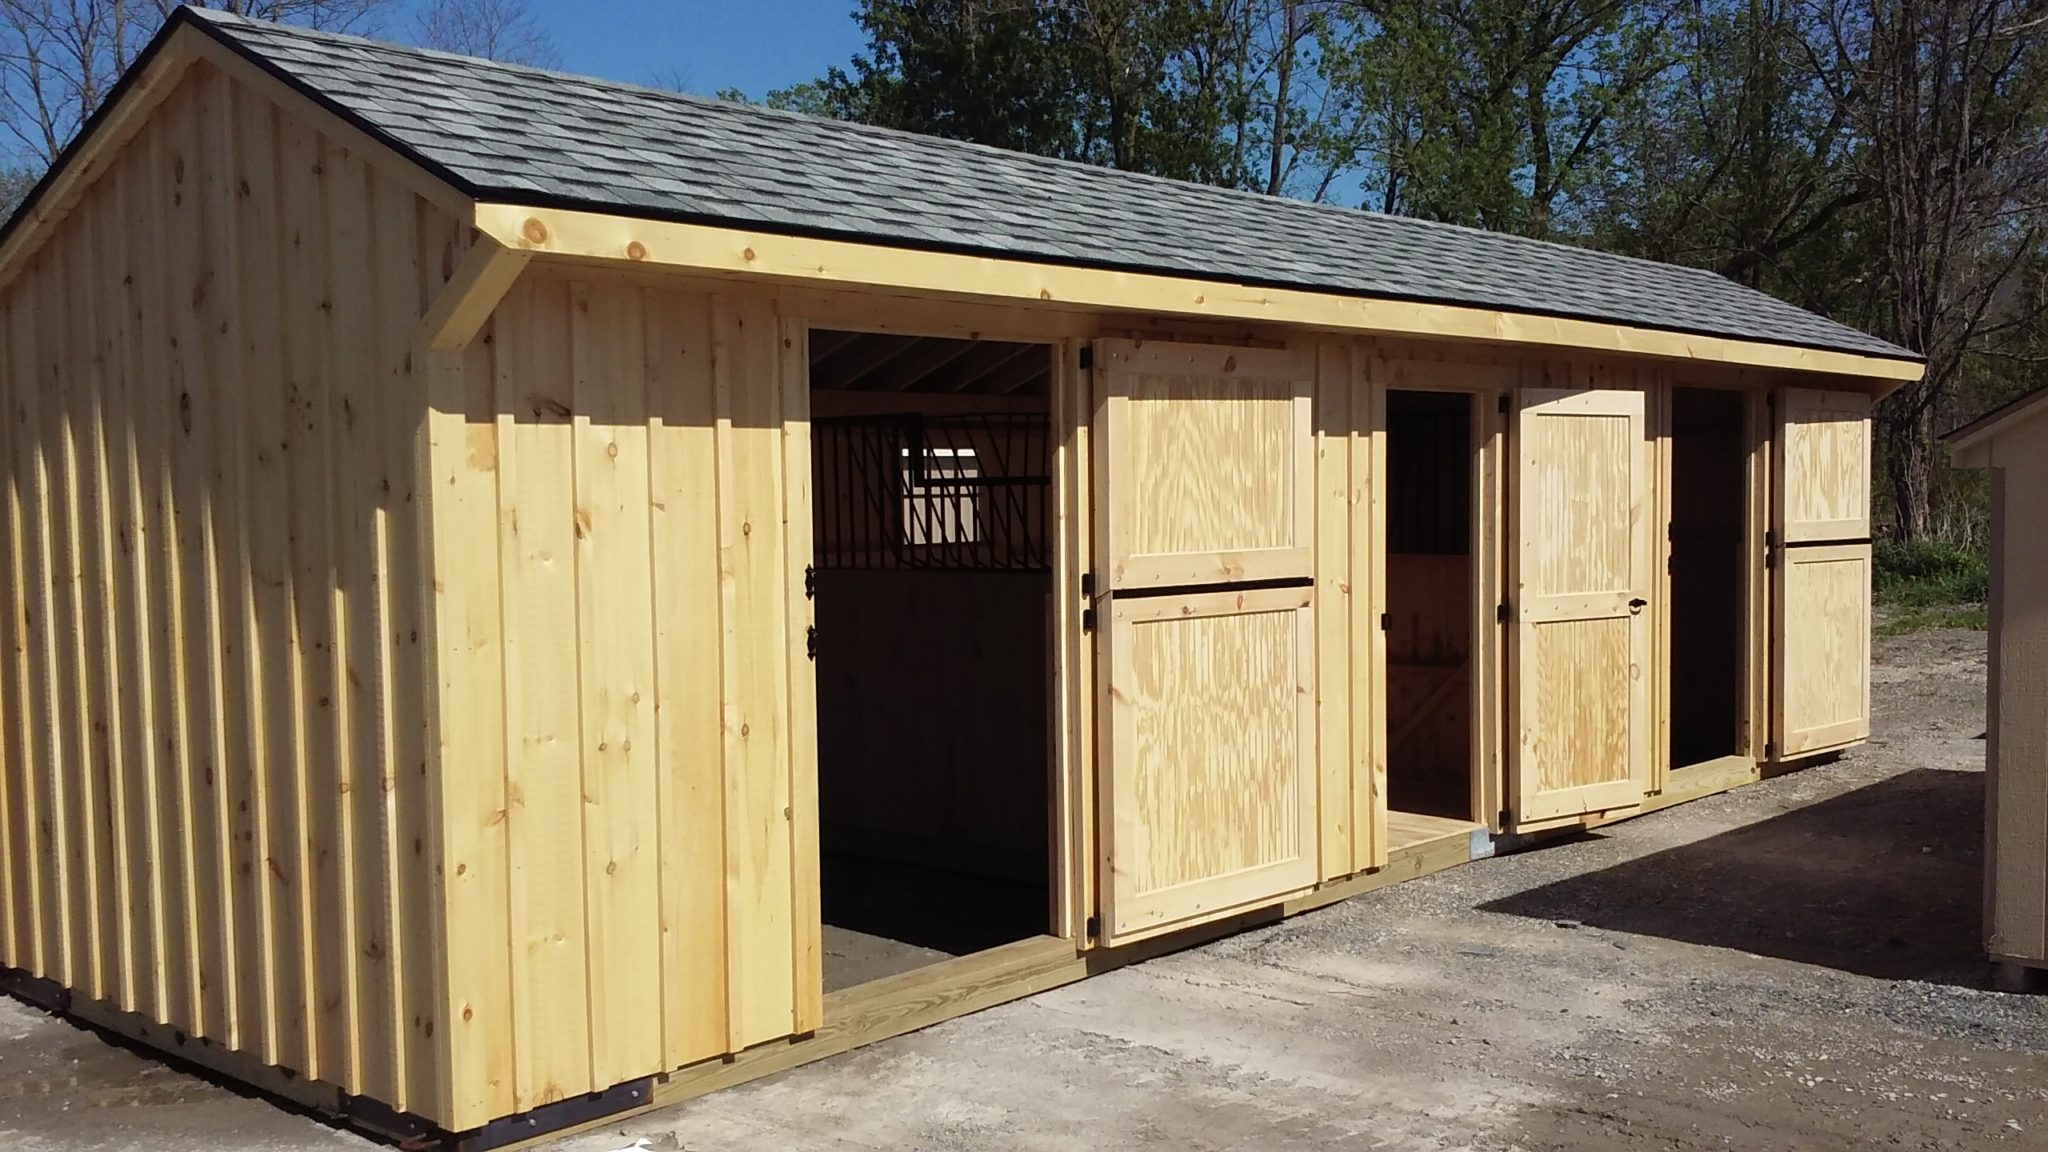 10 39 x32 39 two stall horse barn includes center tack room 2 stall horse barn